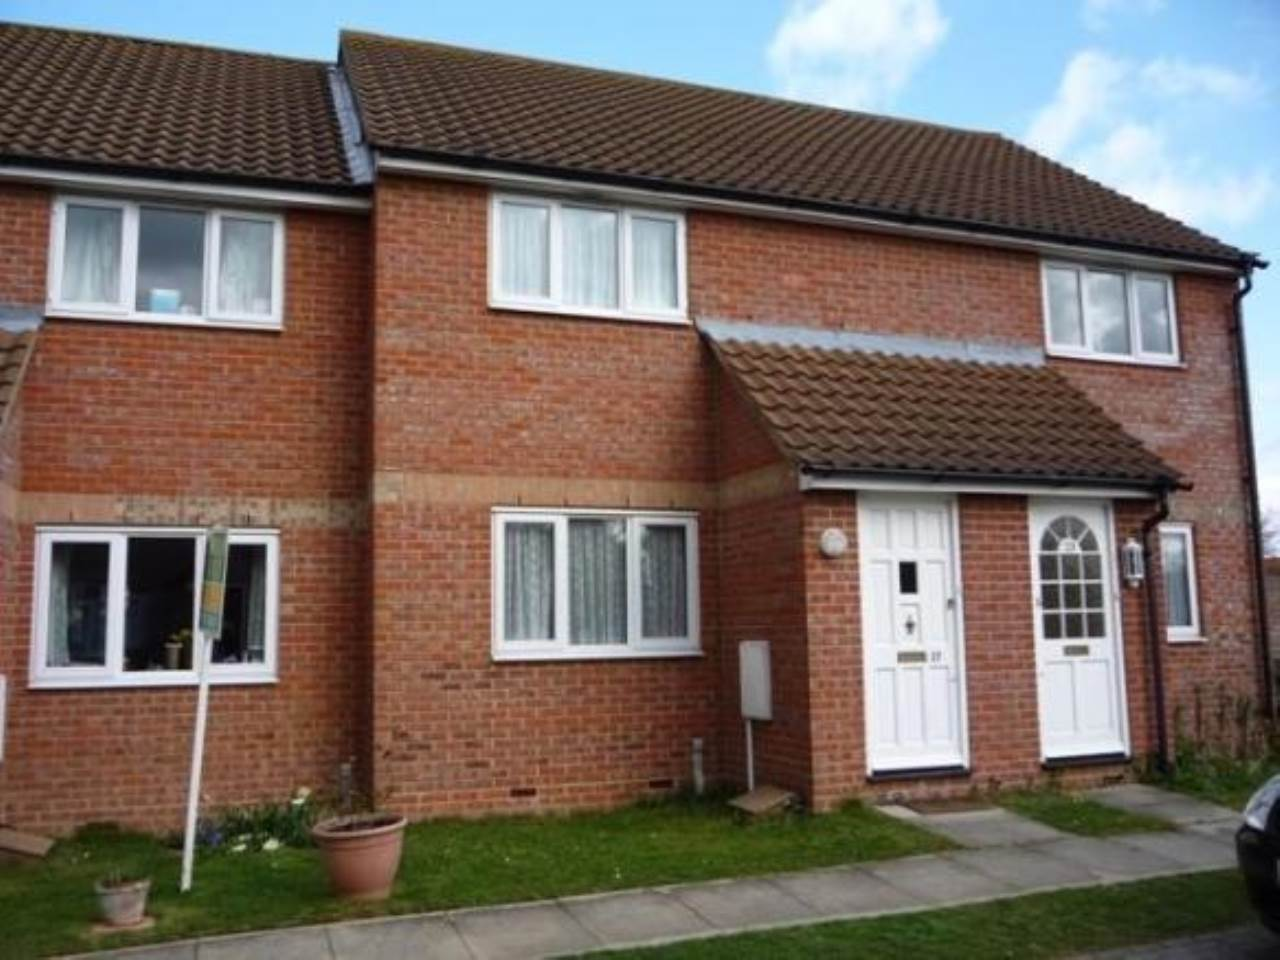 2 bed house to rent in Sudbury, CO10